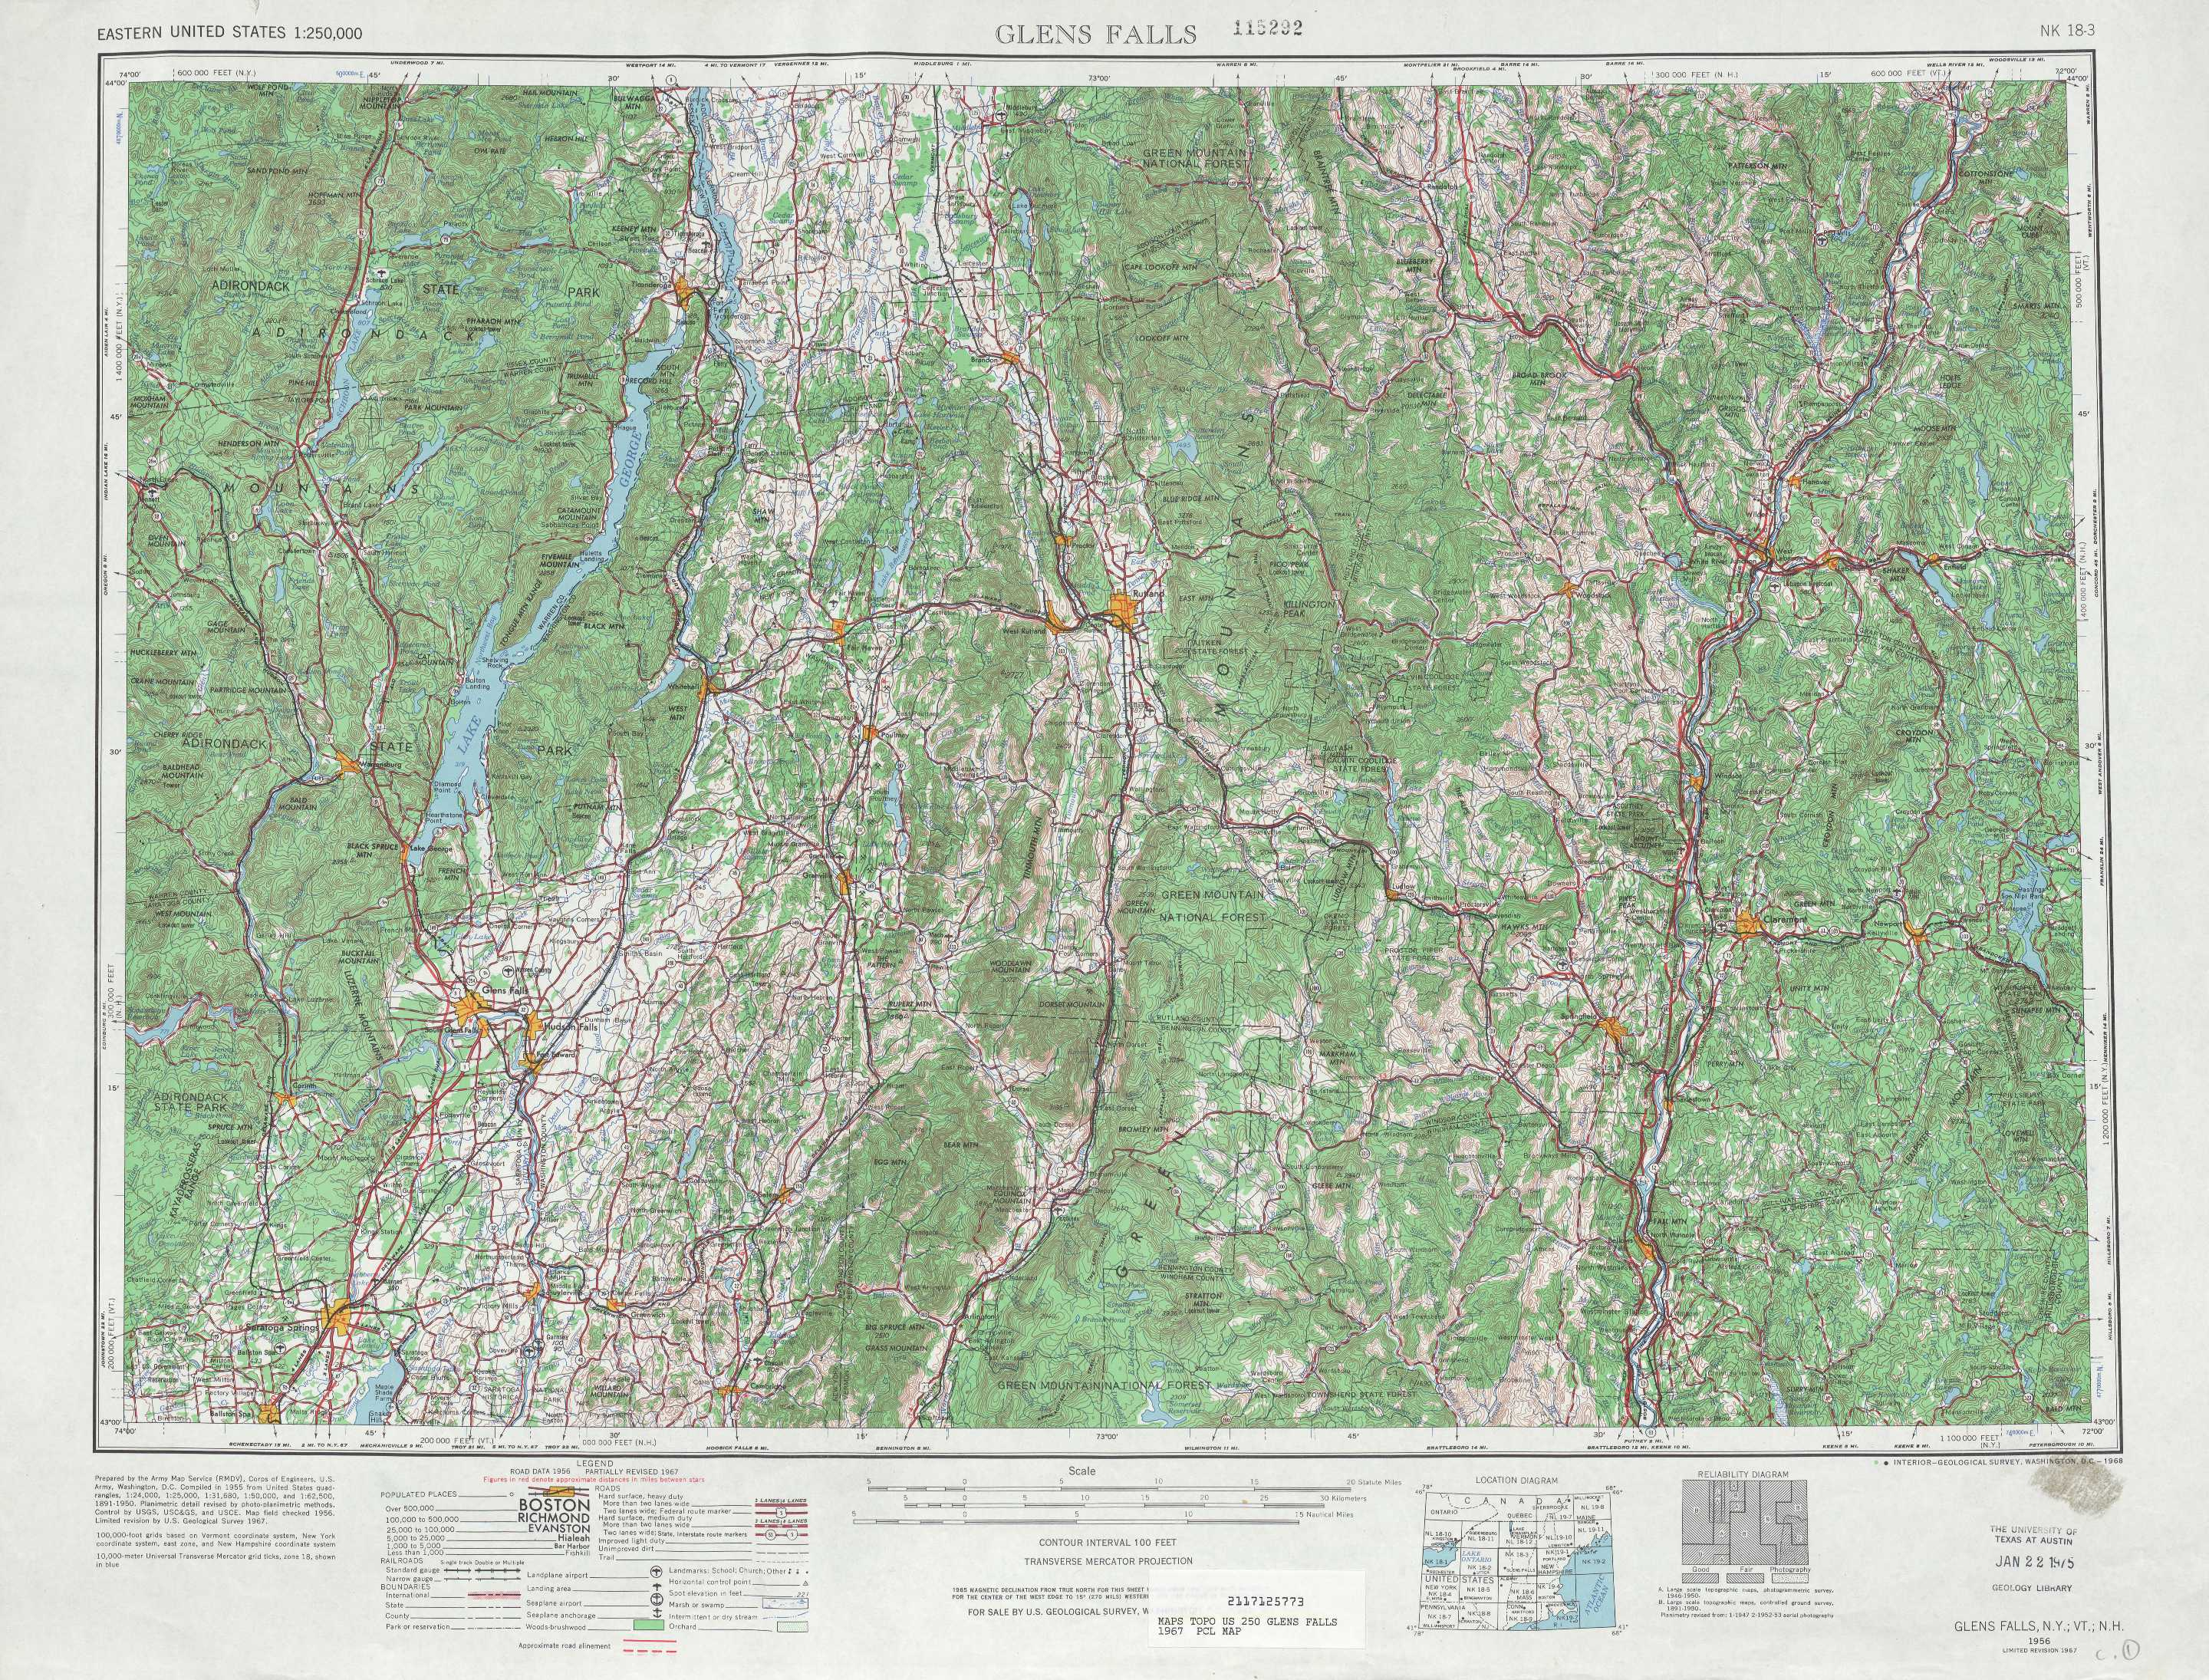 Glens Falls topographic maps, VT, NY, NH - USGS Topo Quad 43072a1 at ...